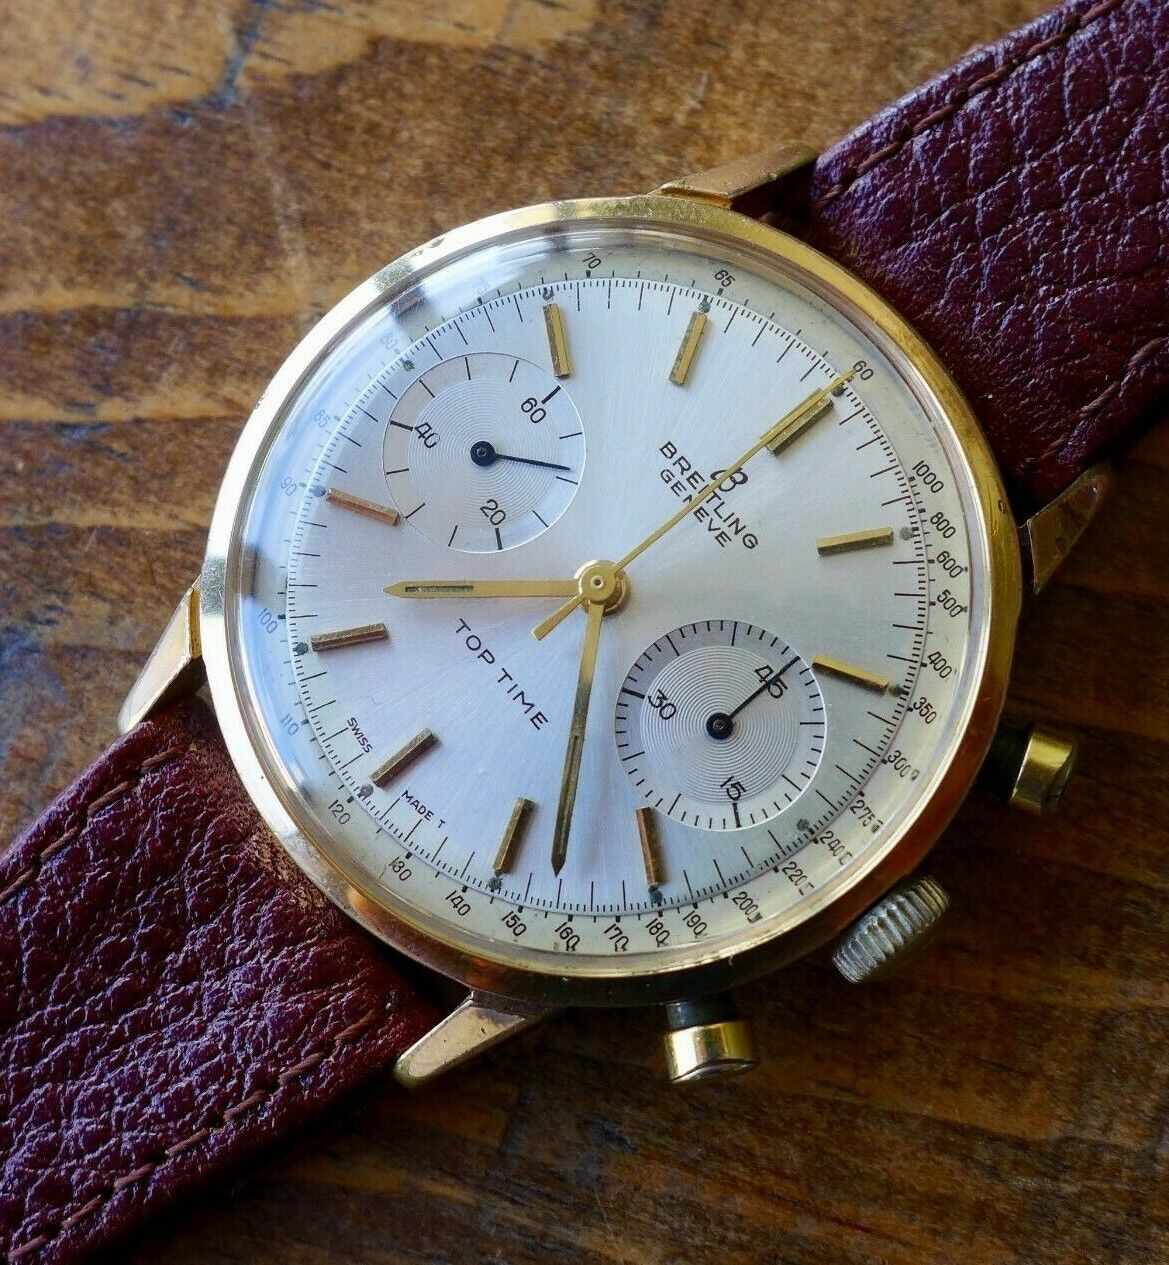 A  VINTAGE 1960s BREITLING TOP TIME CHRONOGRAPH REF. 2000 WRISTWATCH - watch picture 1